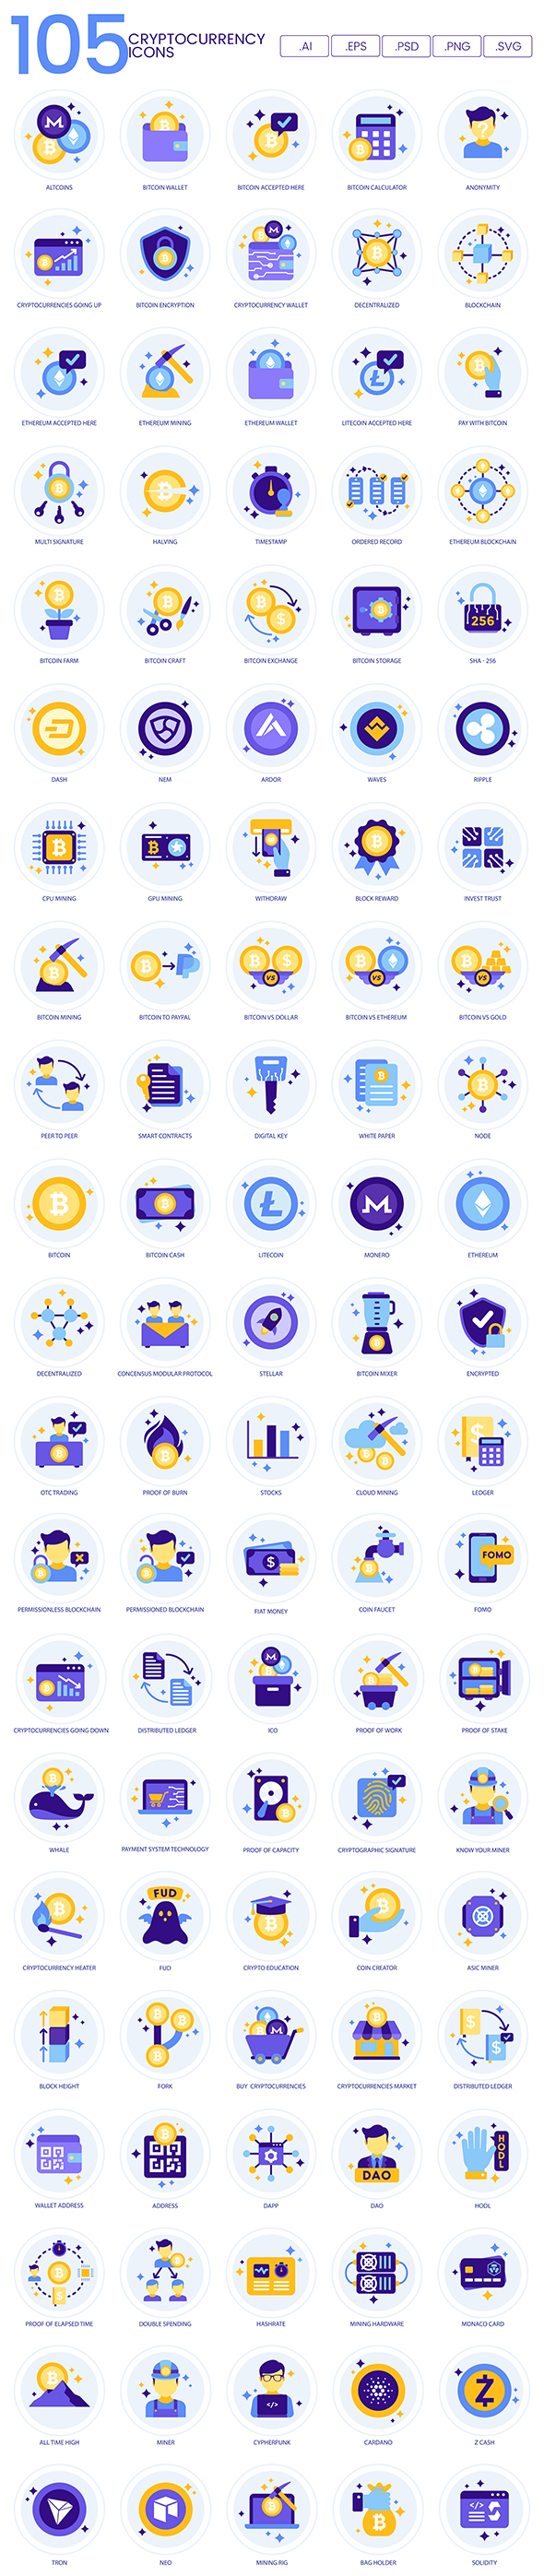 crypto currency vector icons